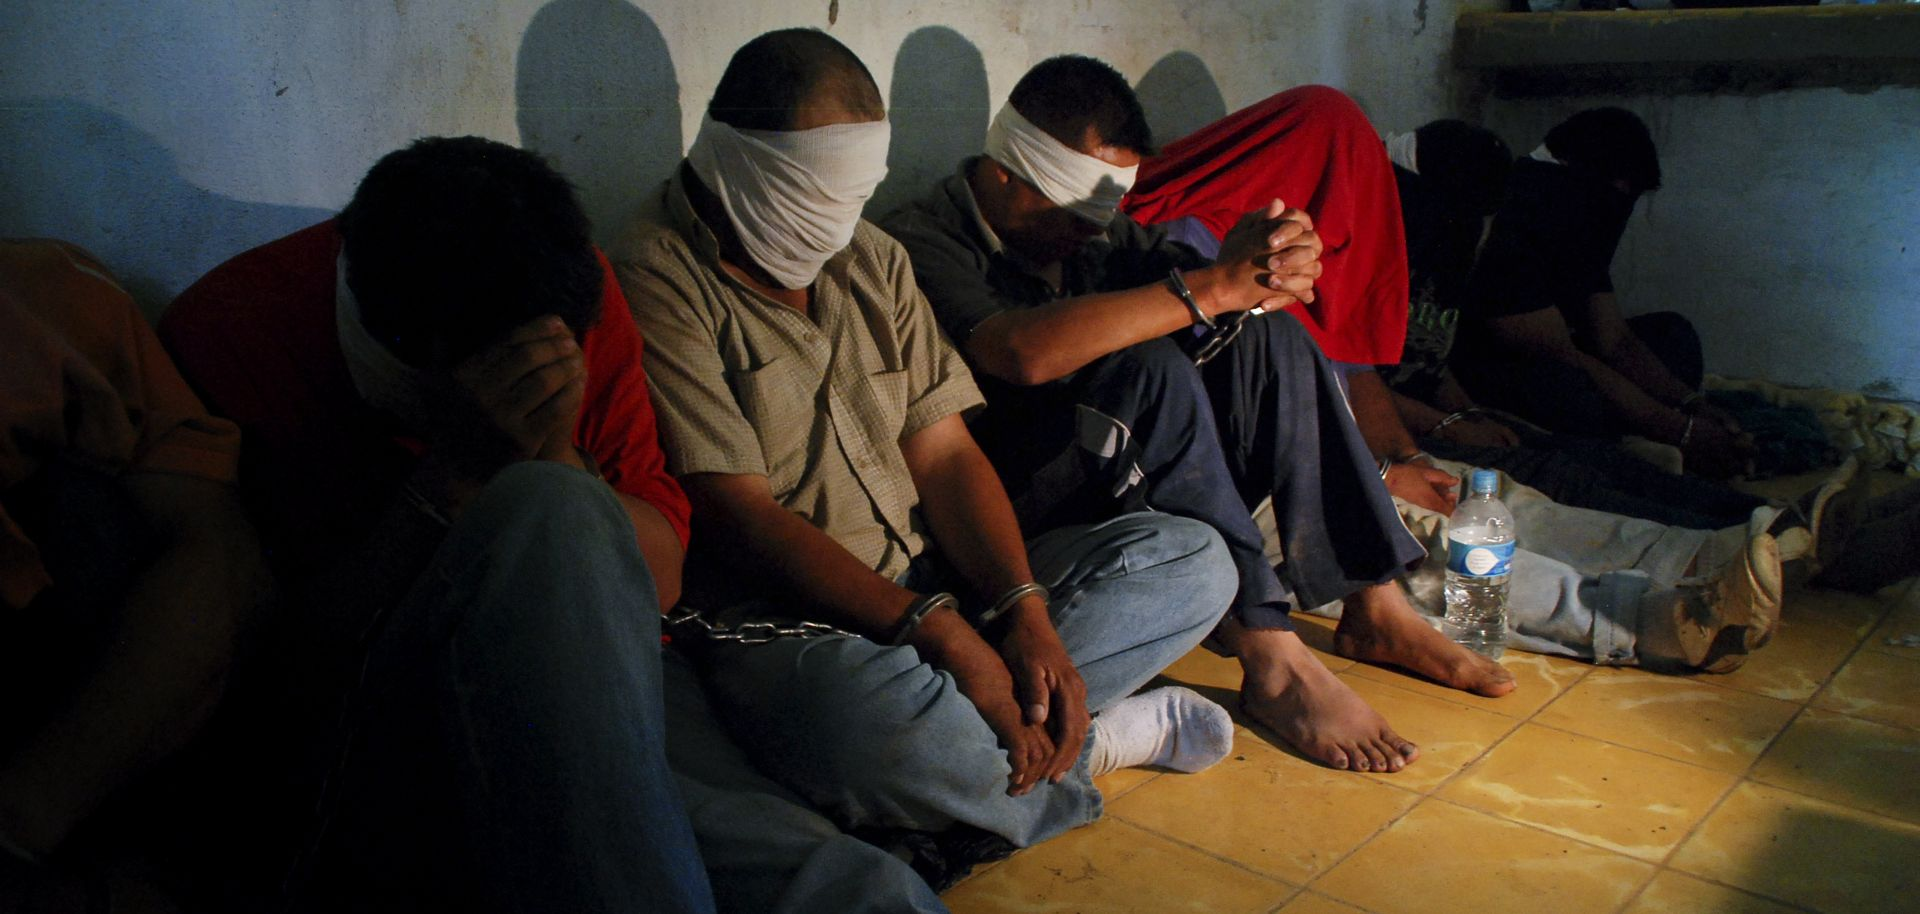 A group of people kidnapped by alleged drug-traffickers, sit on the floor after being rescued.